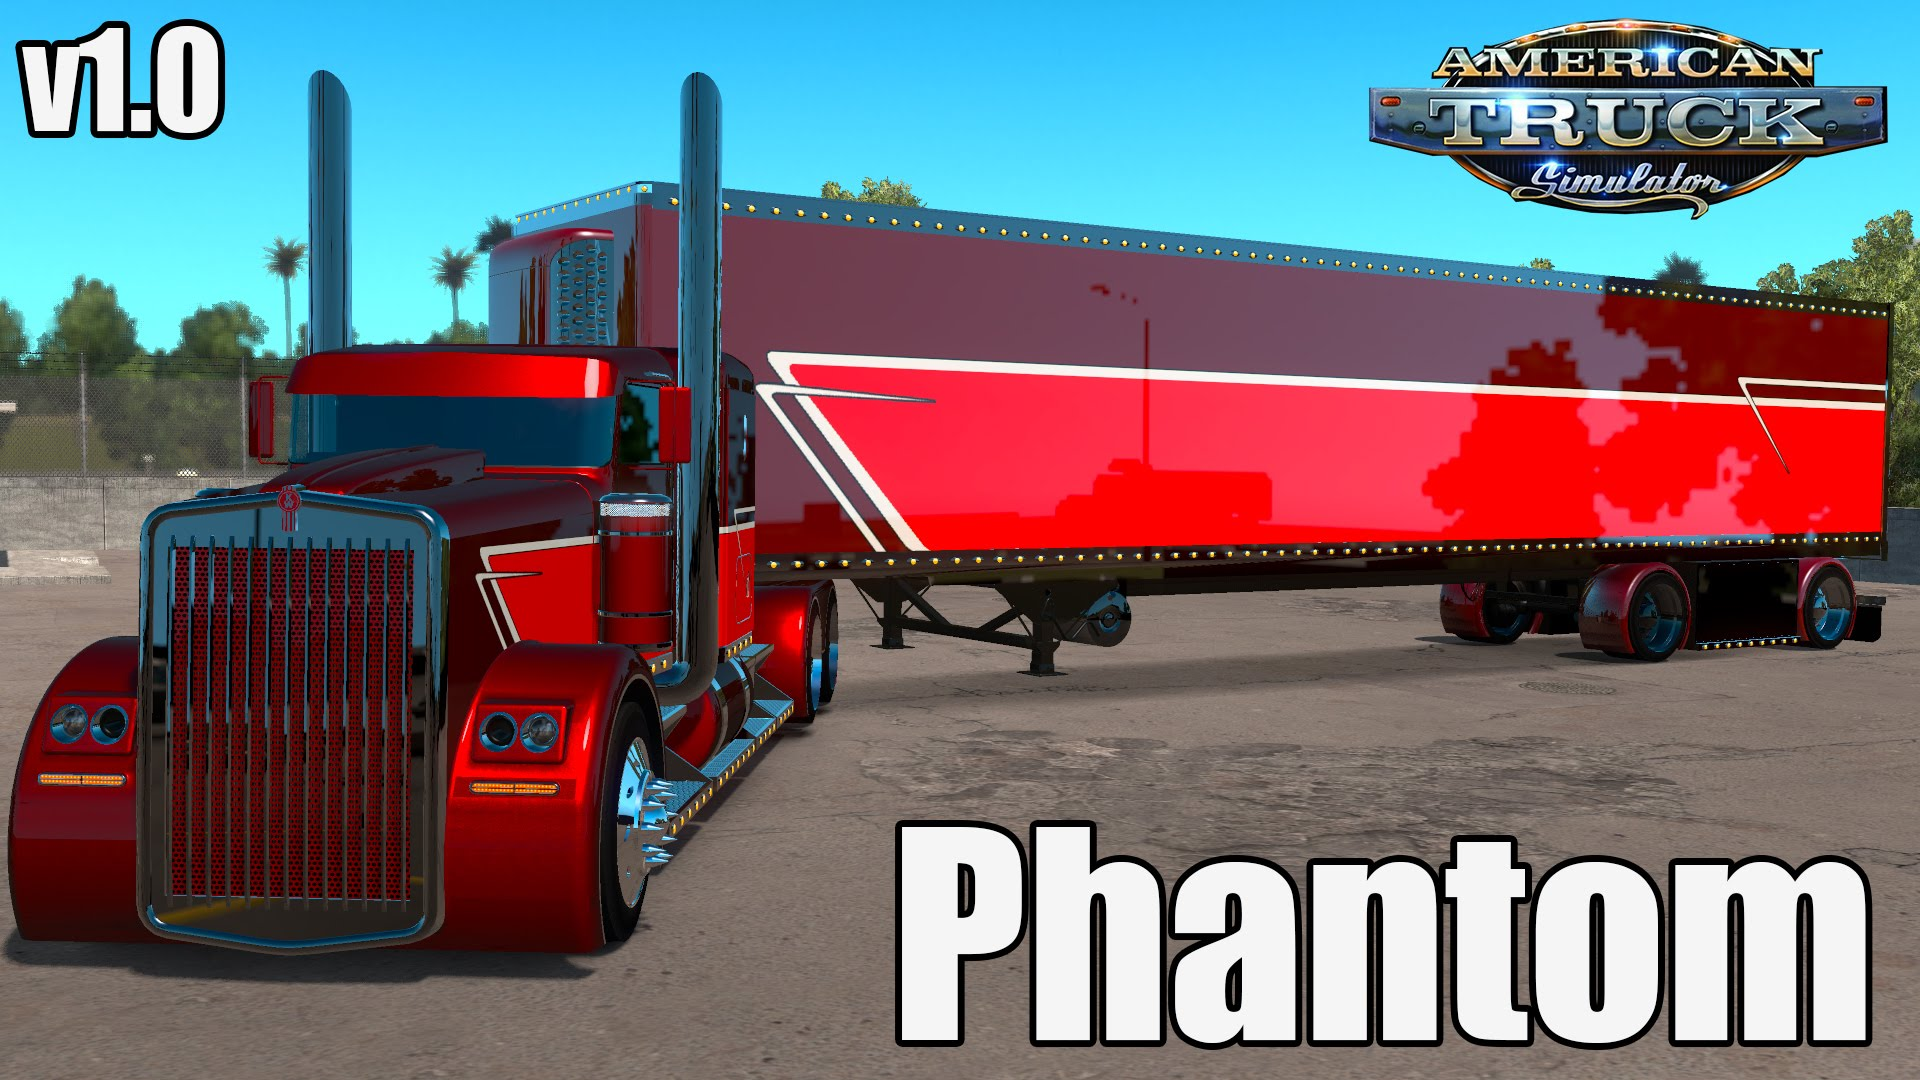 Phantom + Interior + Trailer v1.0 (v1.3.x)